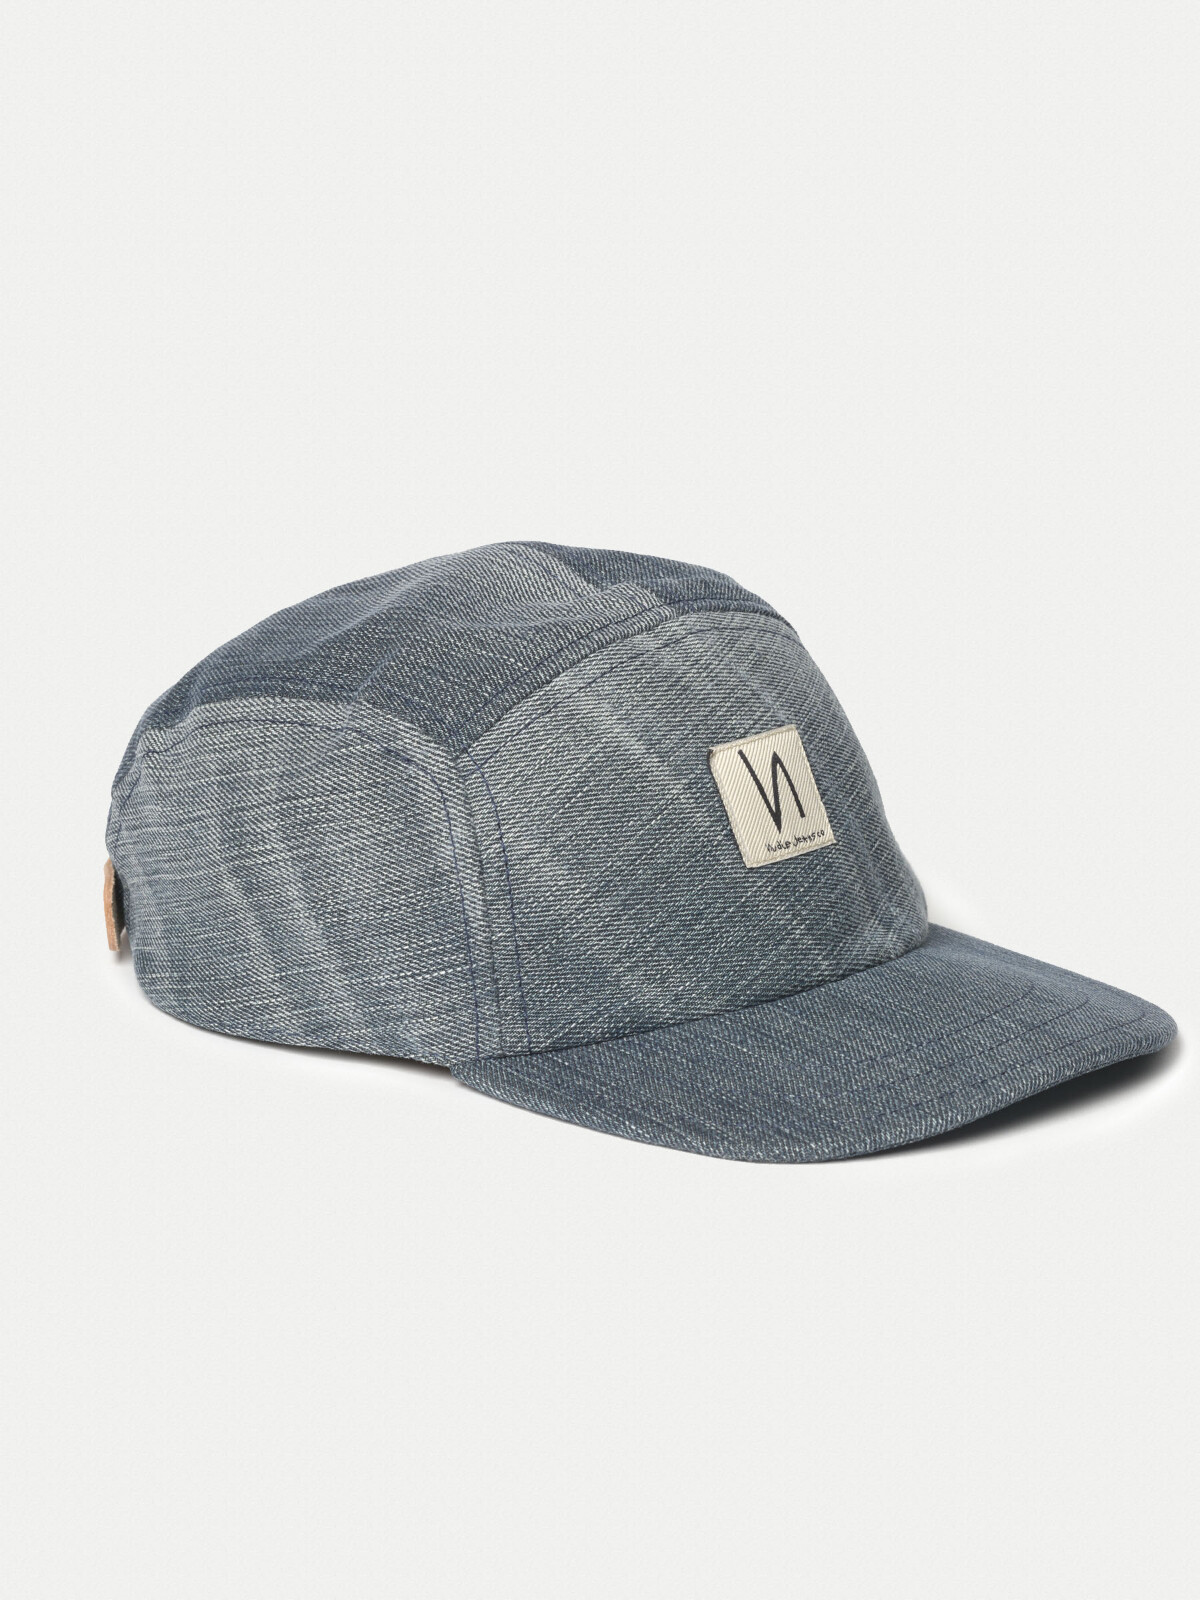 13d8ac9f Buy Larsson Recycled Cap Denim. Please enable JavaScript to buy this product .